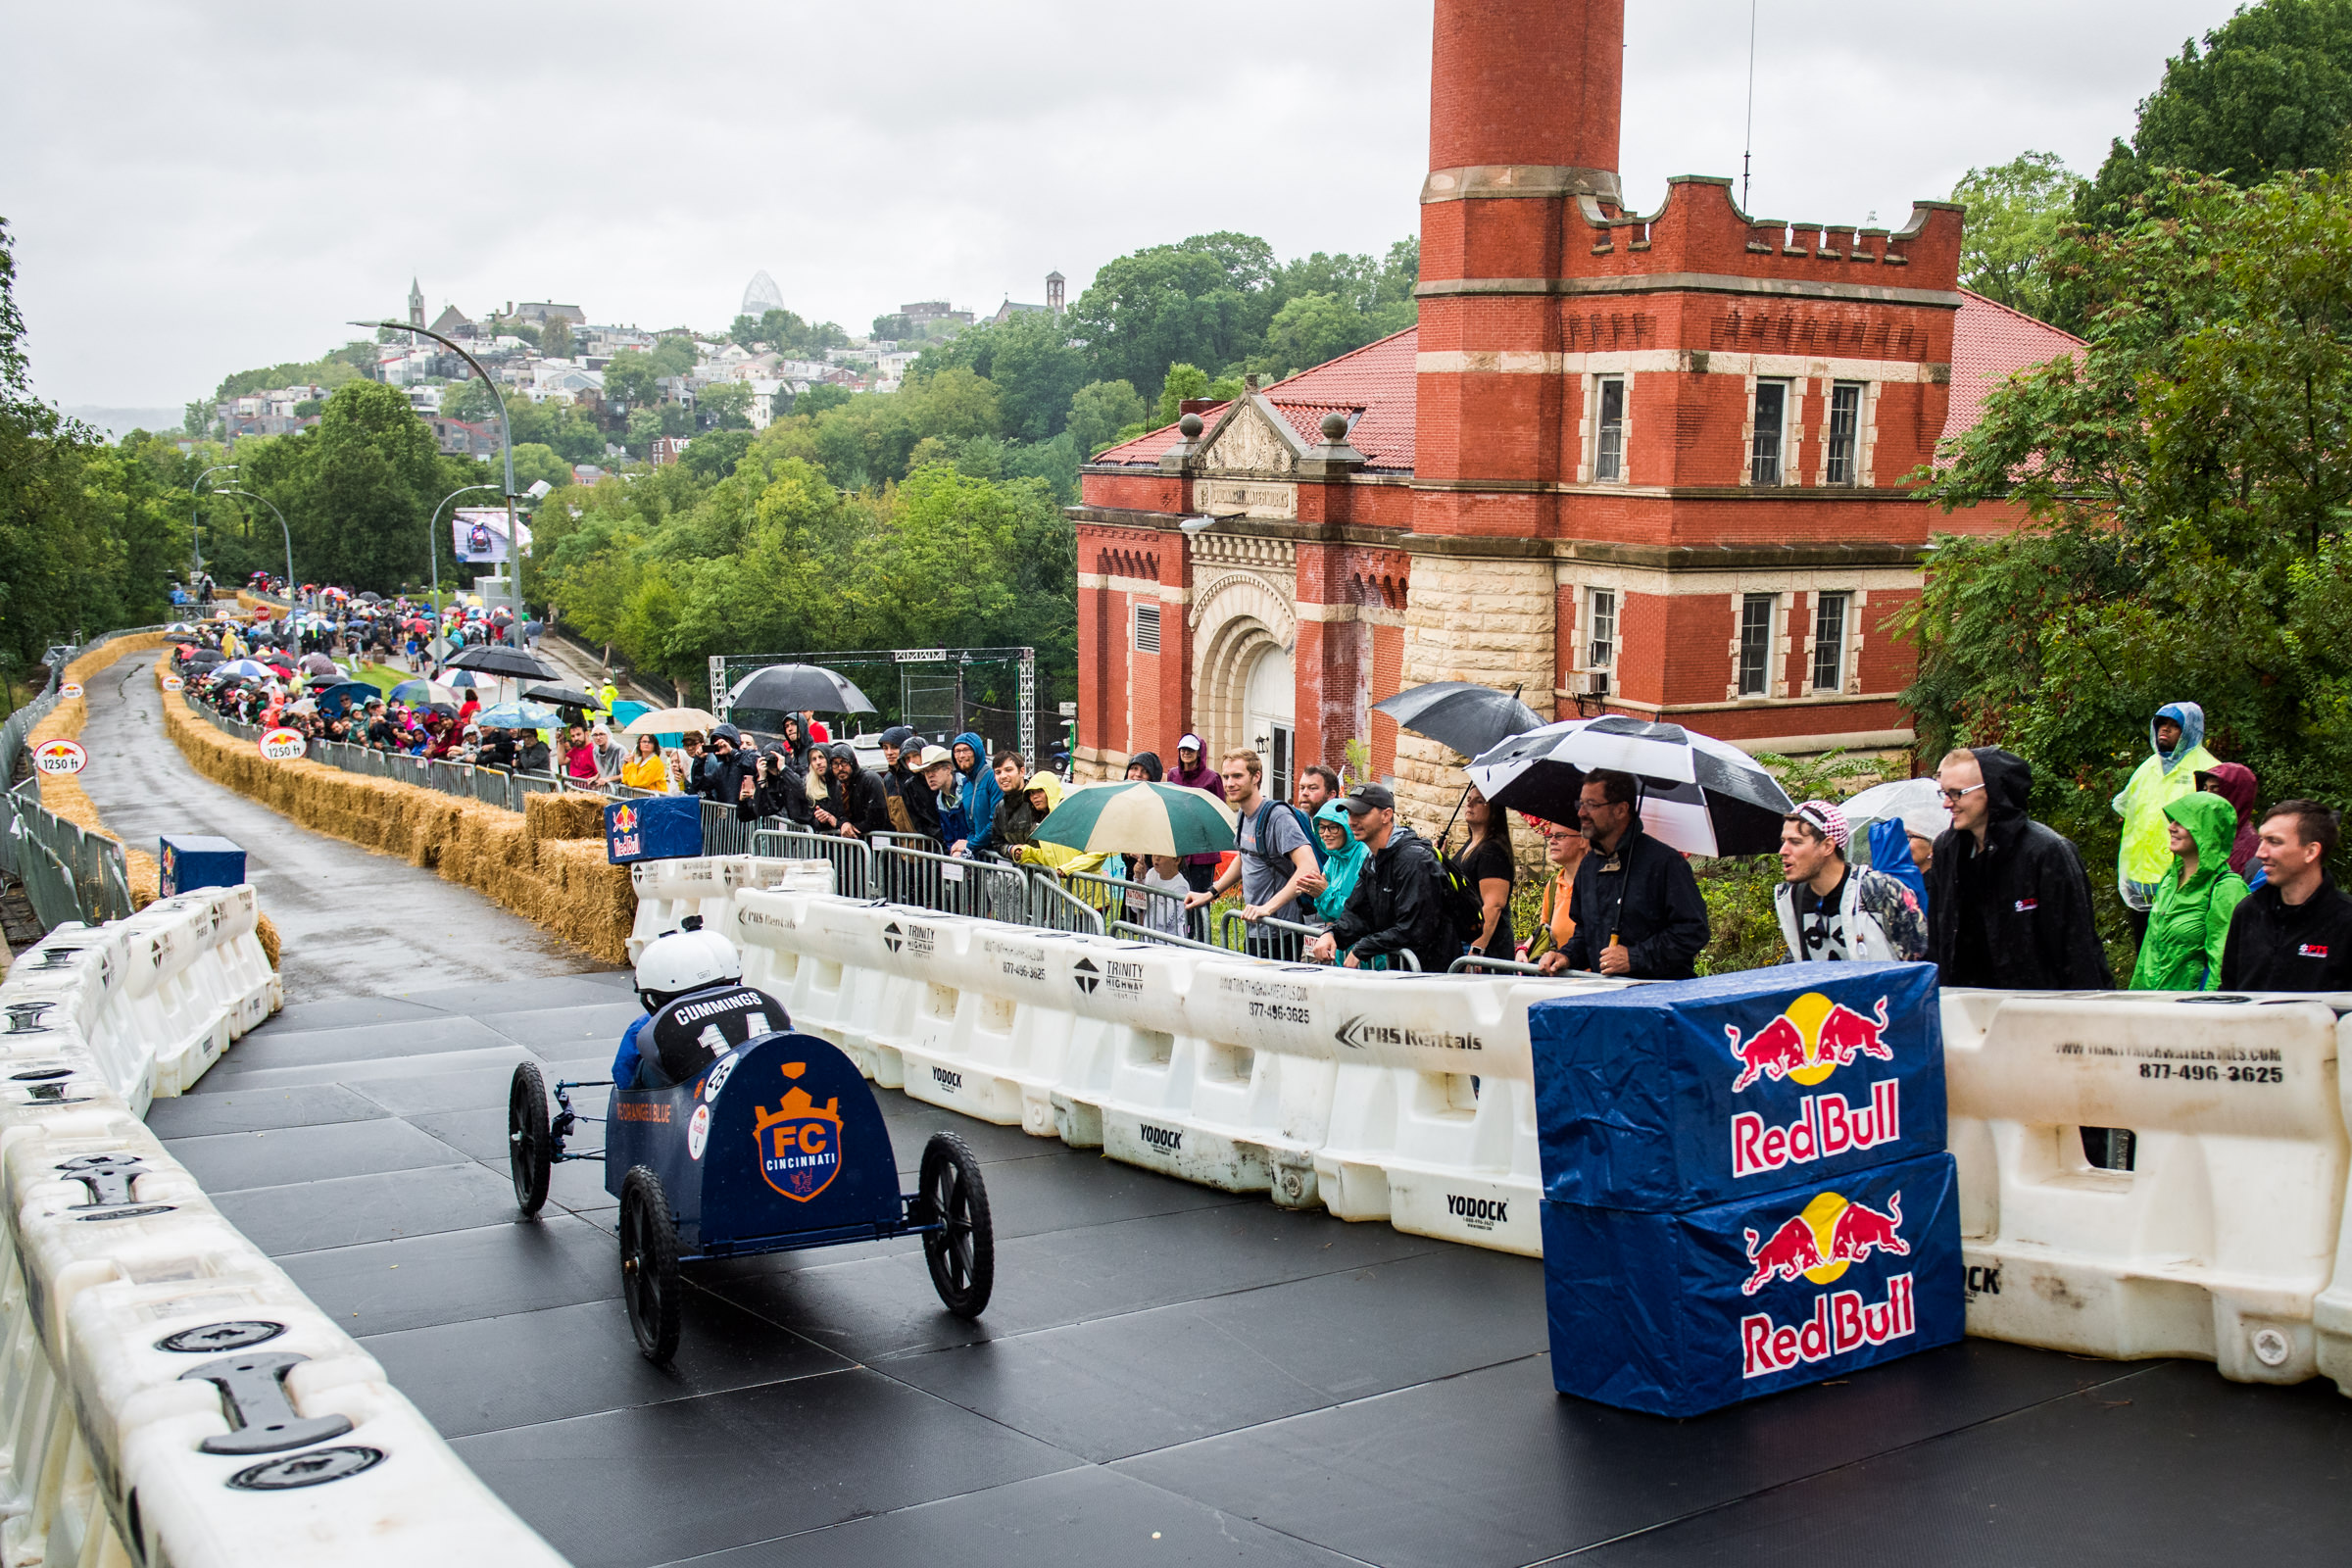 The RedBull Soapbox Race was (kind of) held on Saturday, September 8. Over 50 non-motorized, human-powered racing cars sporting different designs were ready to speed downhill through Eden Park. Unfortunately, due to rainy conditions, only 26 teams were able to compete. RedBull has held 100+ soapbox races around the world over the last 18 years; this year's event was Cincinnati's third soapbox race. / Image courtesy of RedBull // Published: 9.9.18